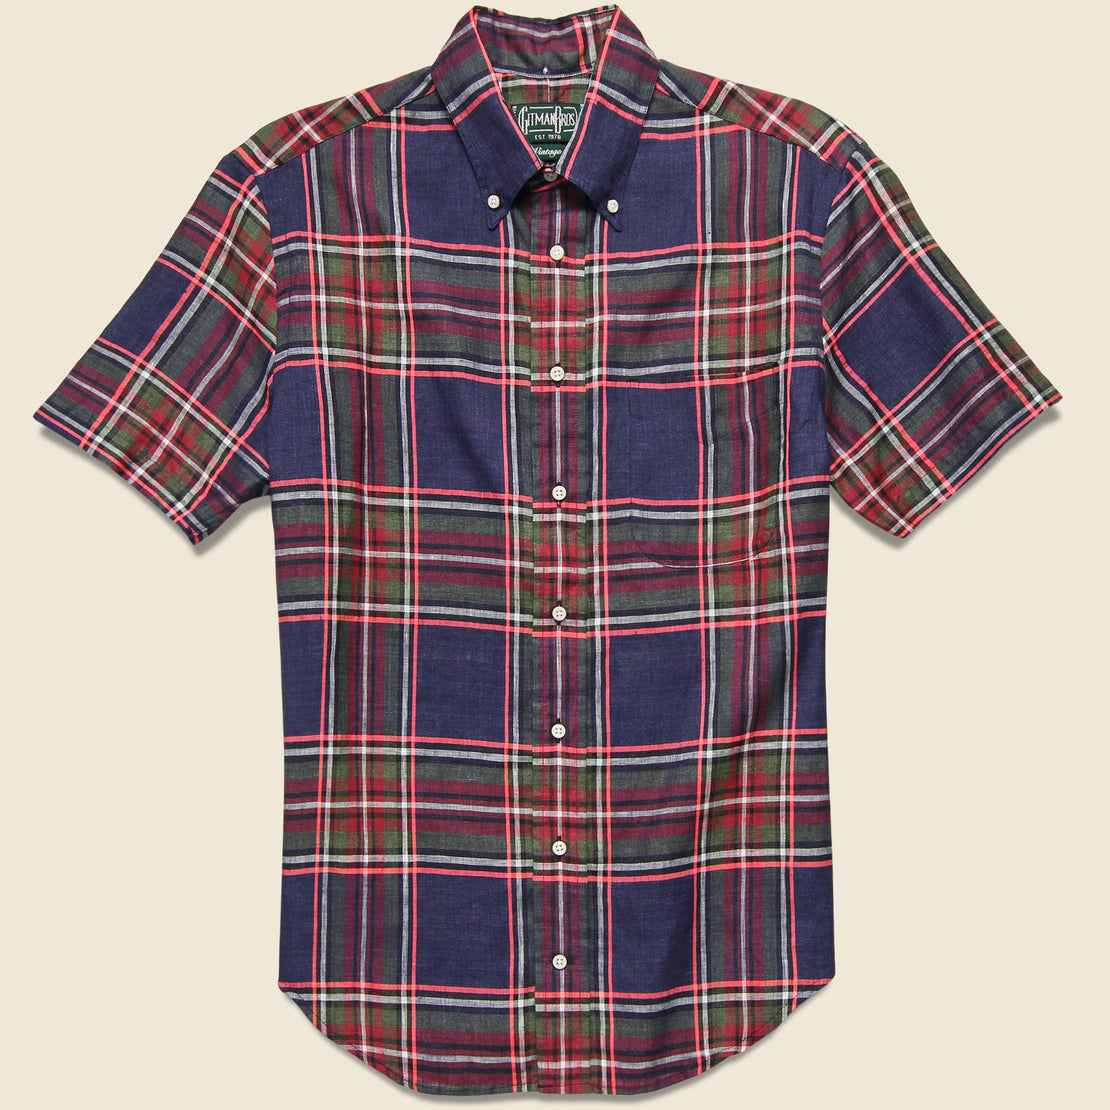 Gitman Vintage Archive Madras Oxford Shirt - Navy